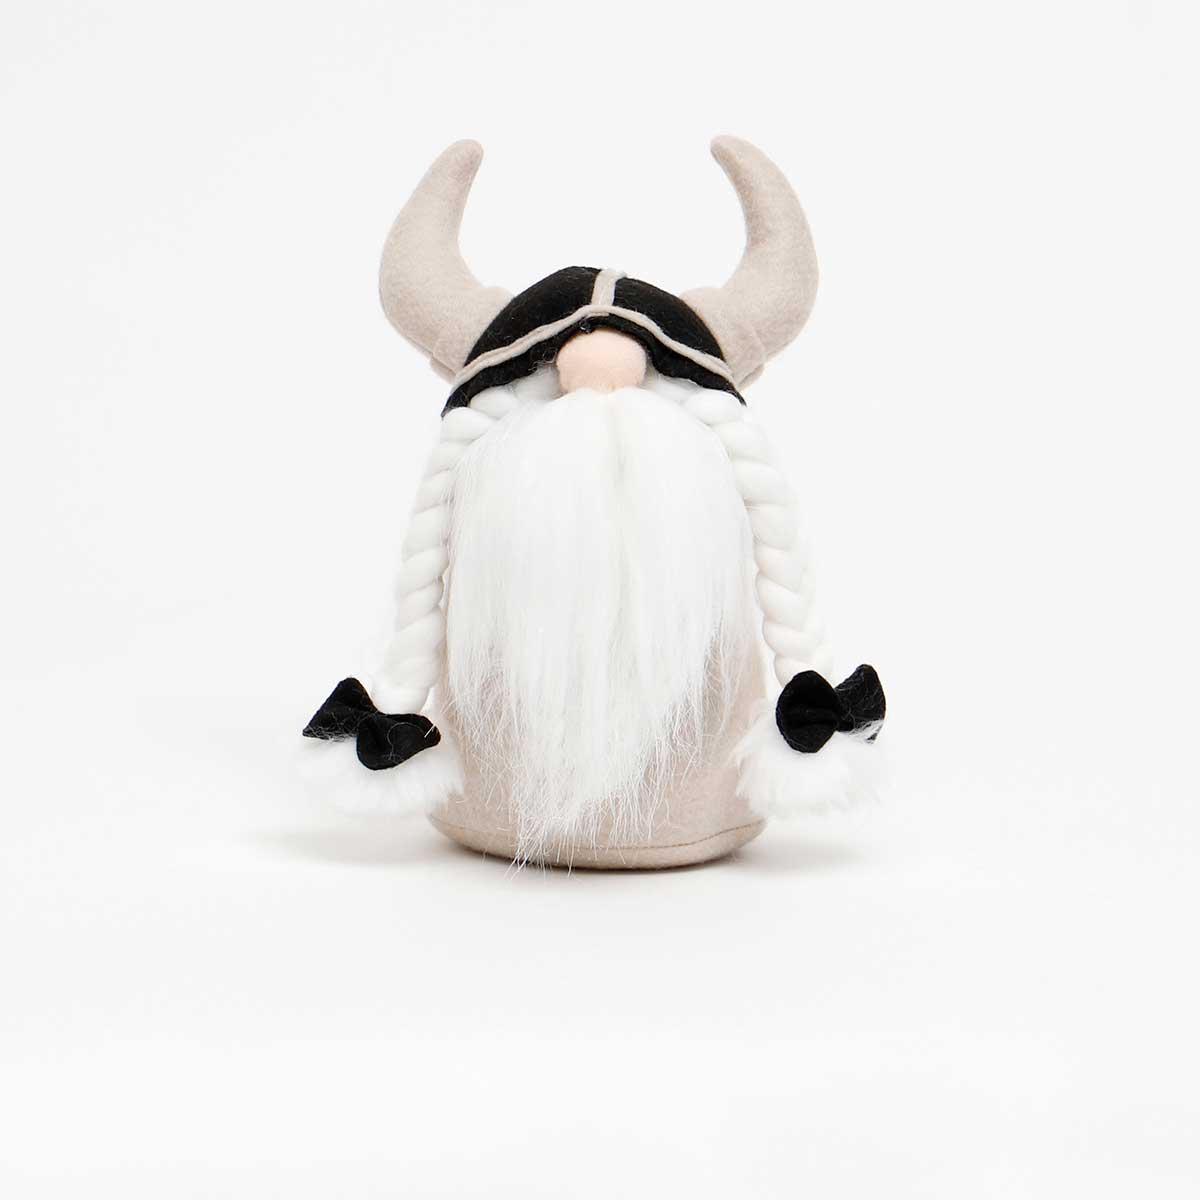 HENRIK VIKING GNOME WITH